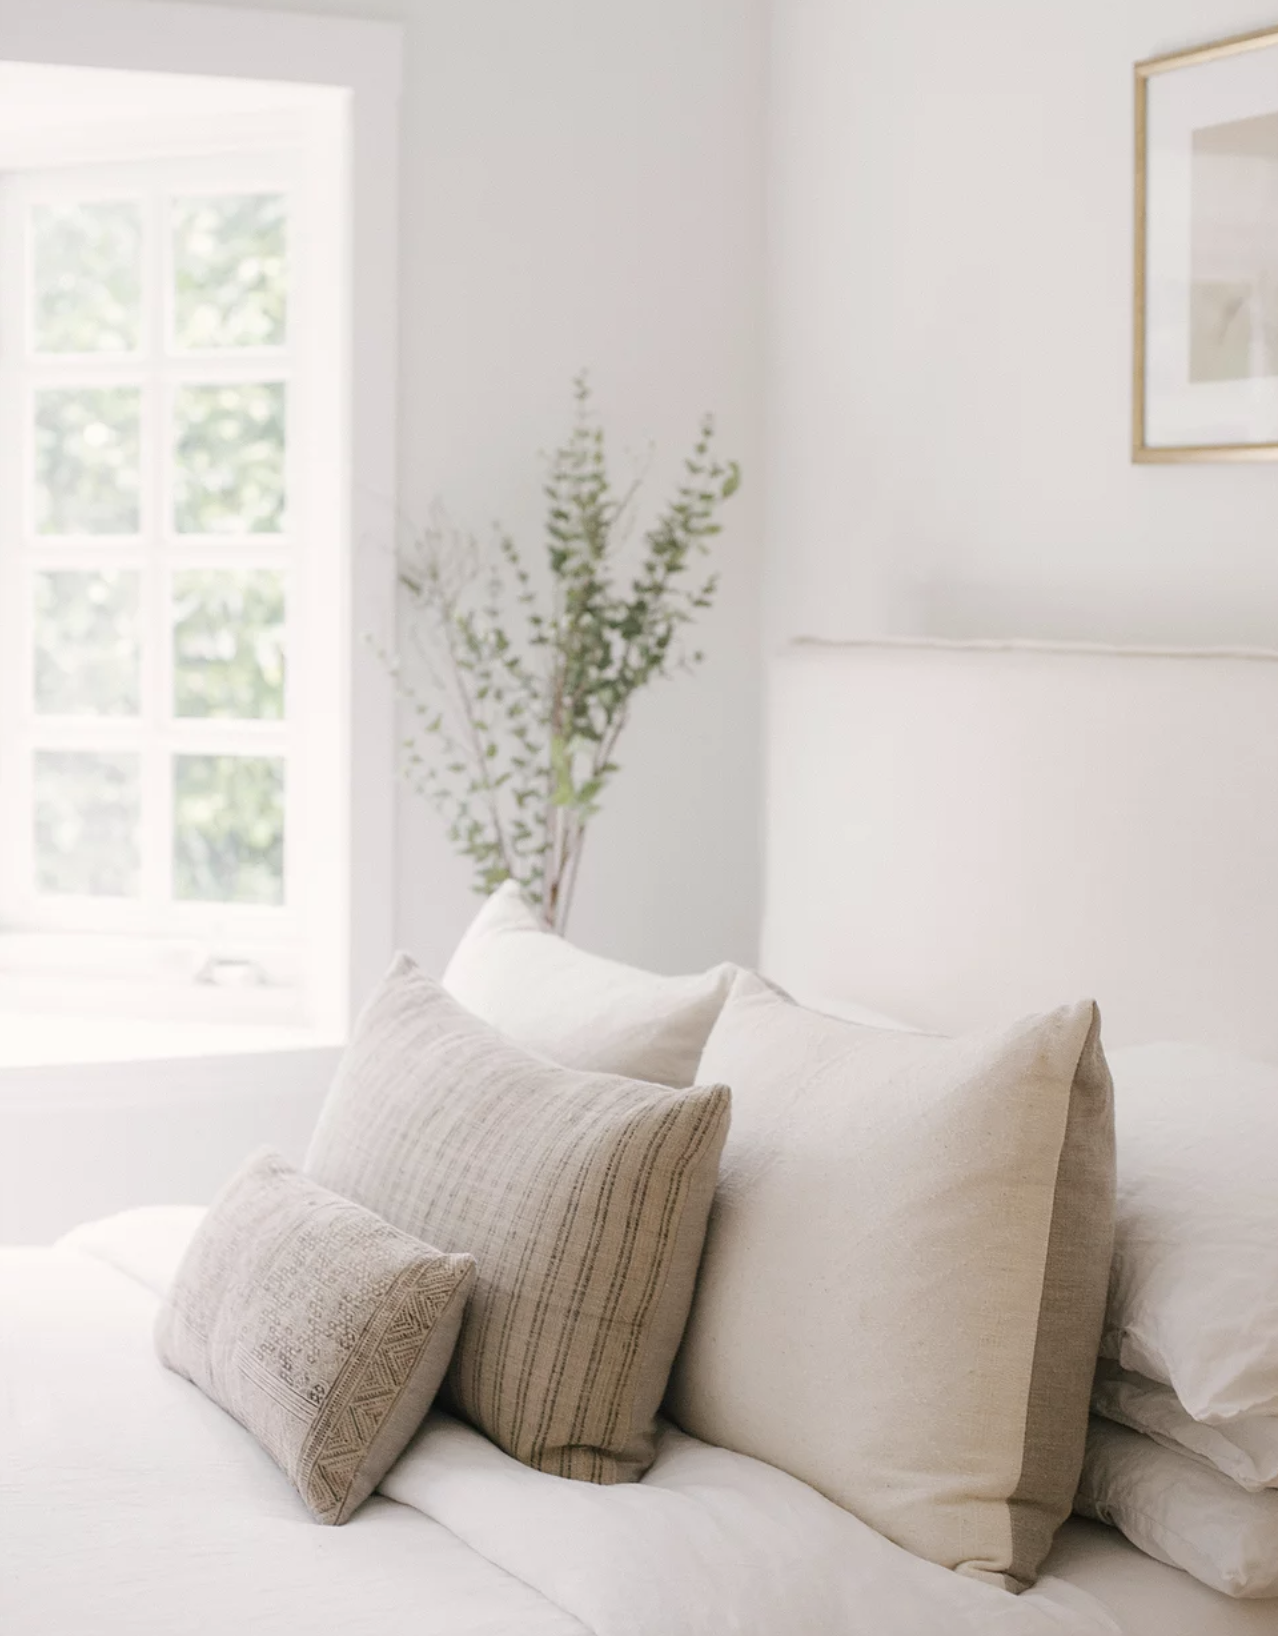 Neutral Bedroom & Vintage Pillows | JDP Interiors | Stanley Project